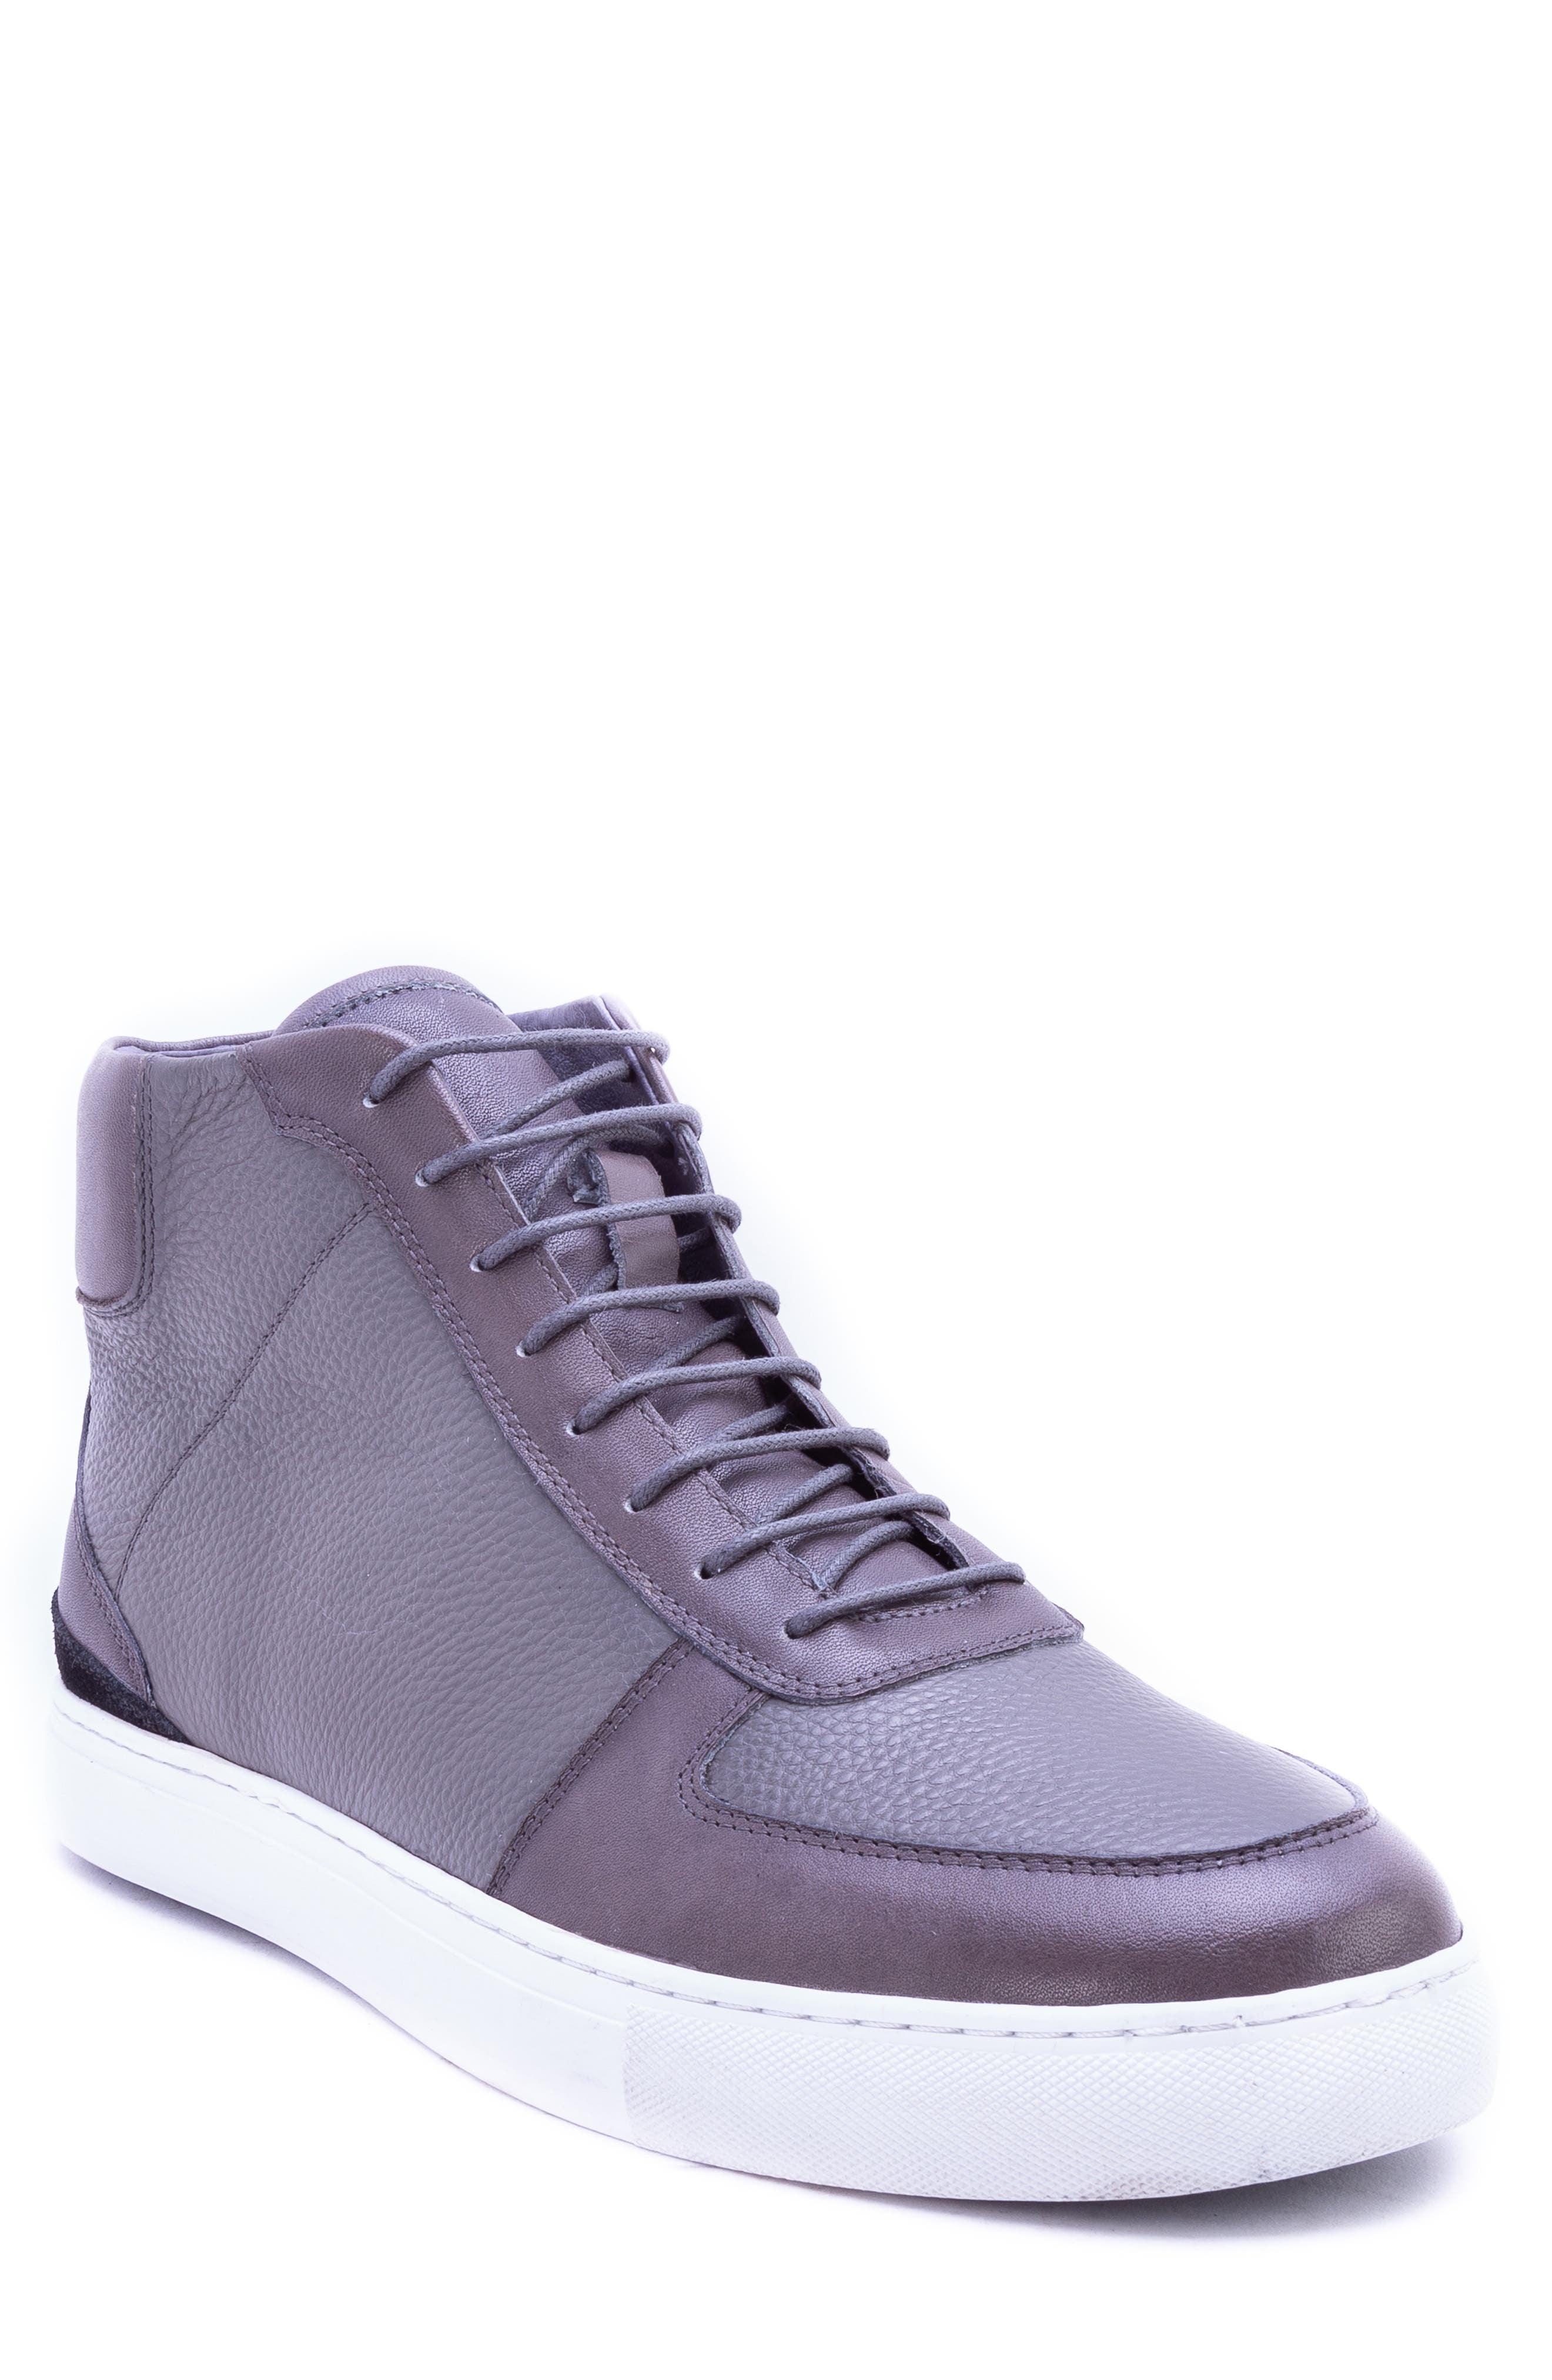 Tassel High Top Sneaker,                             Main thumbnail 1, color,                             GREY LEATHER